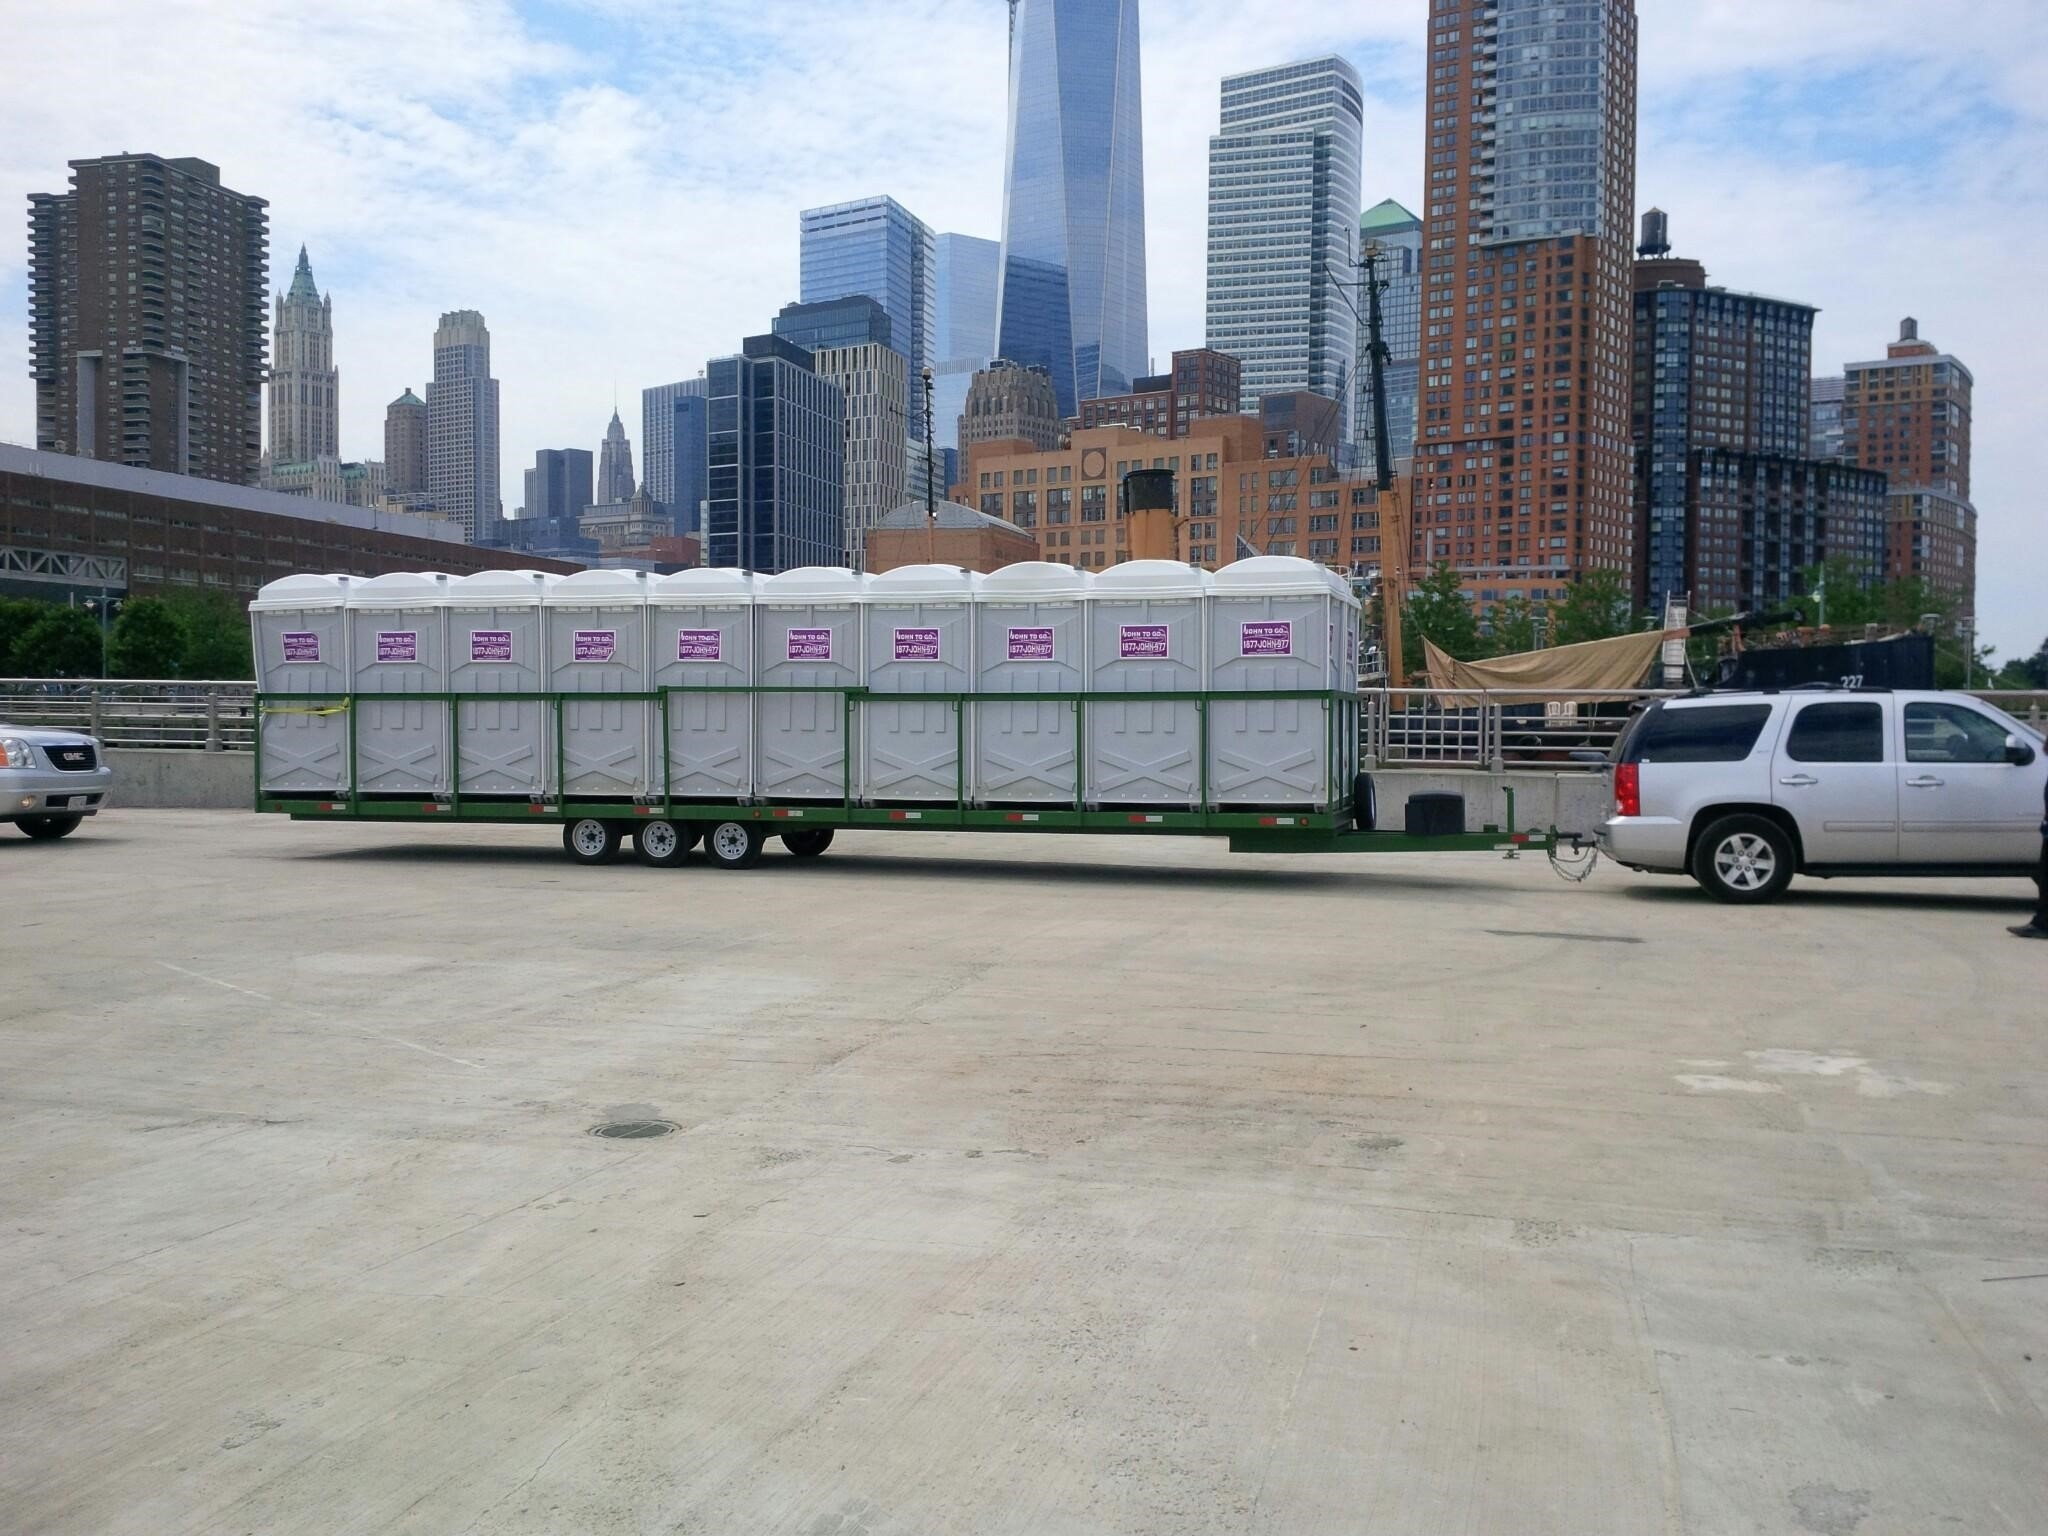 porta potty units being delivered